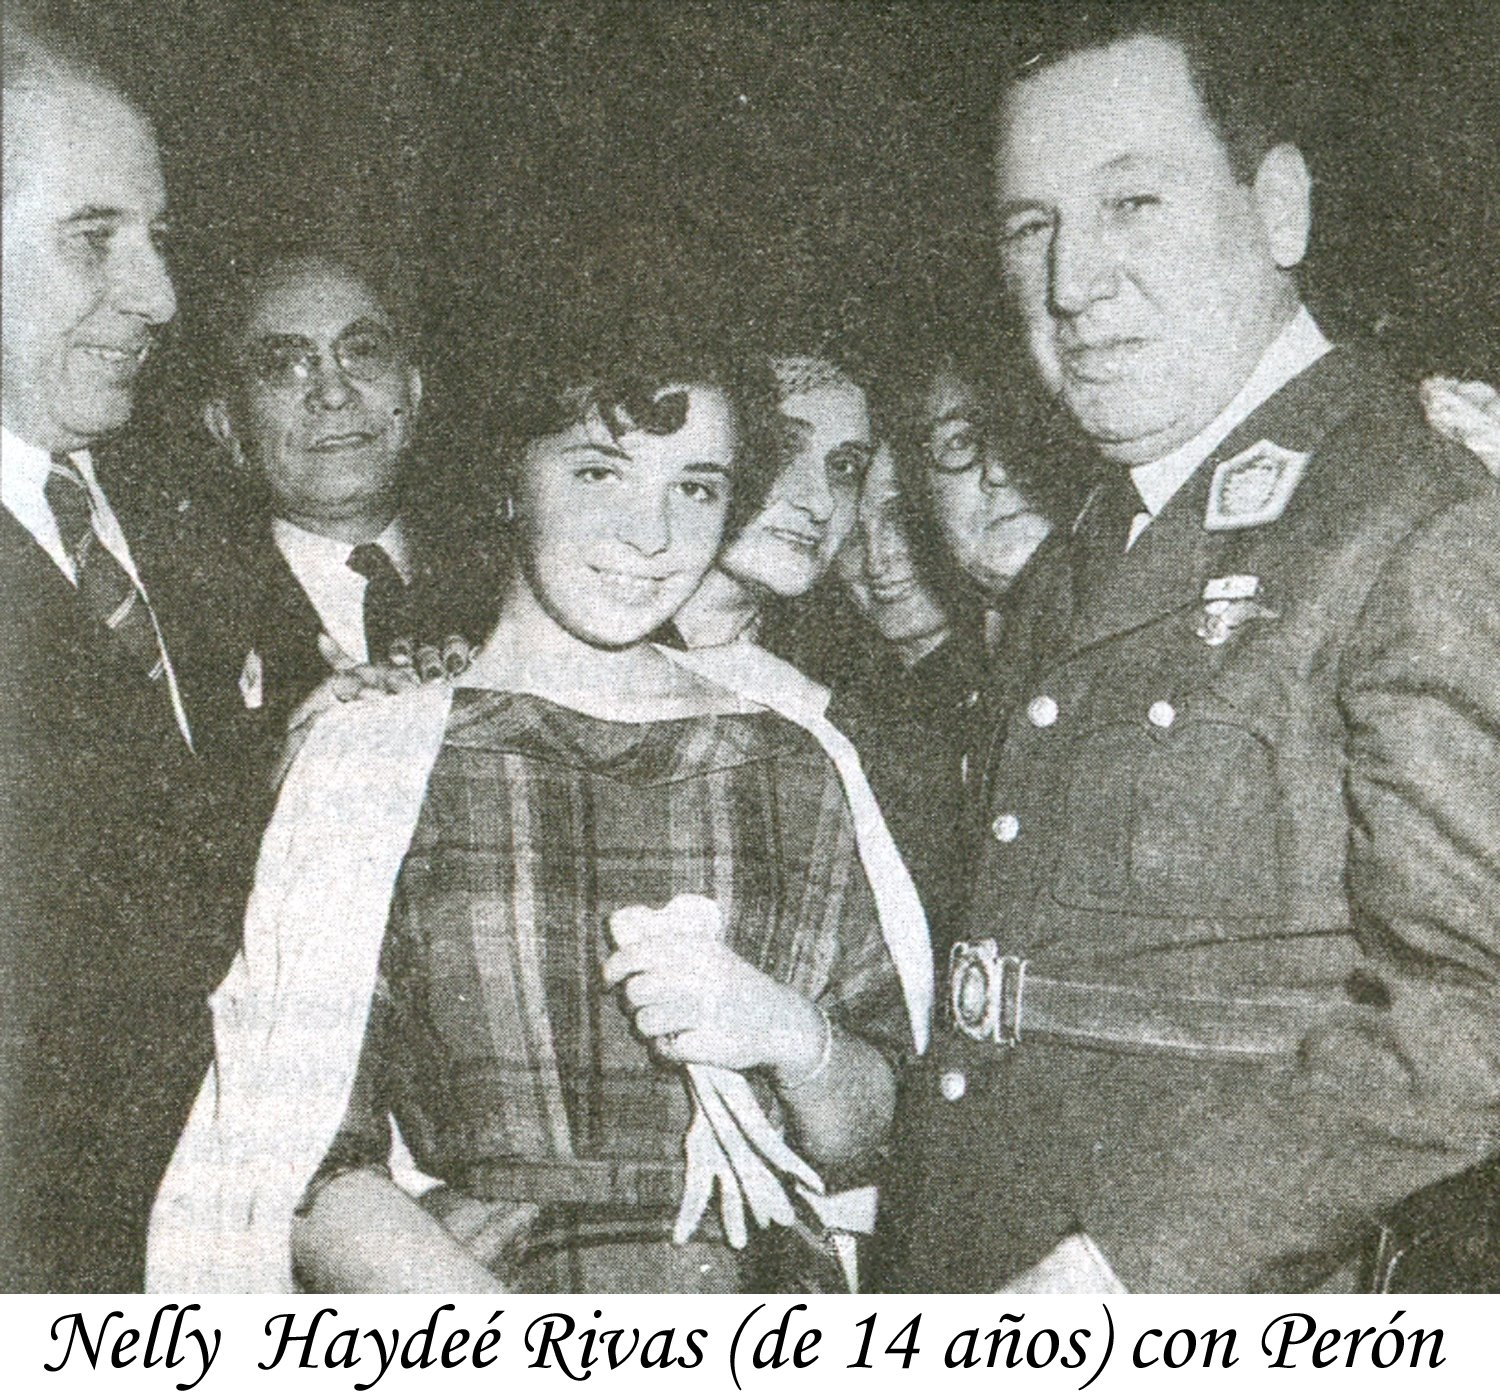 El General Perón no era pedofilo